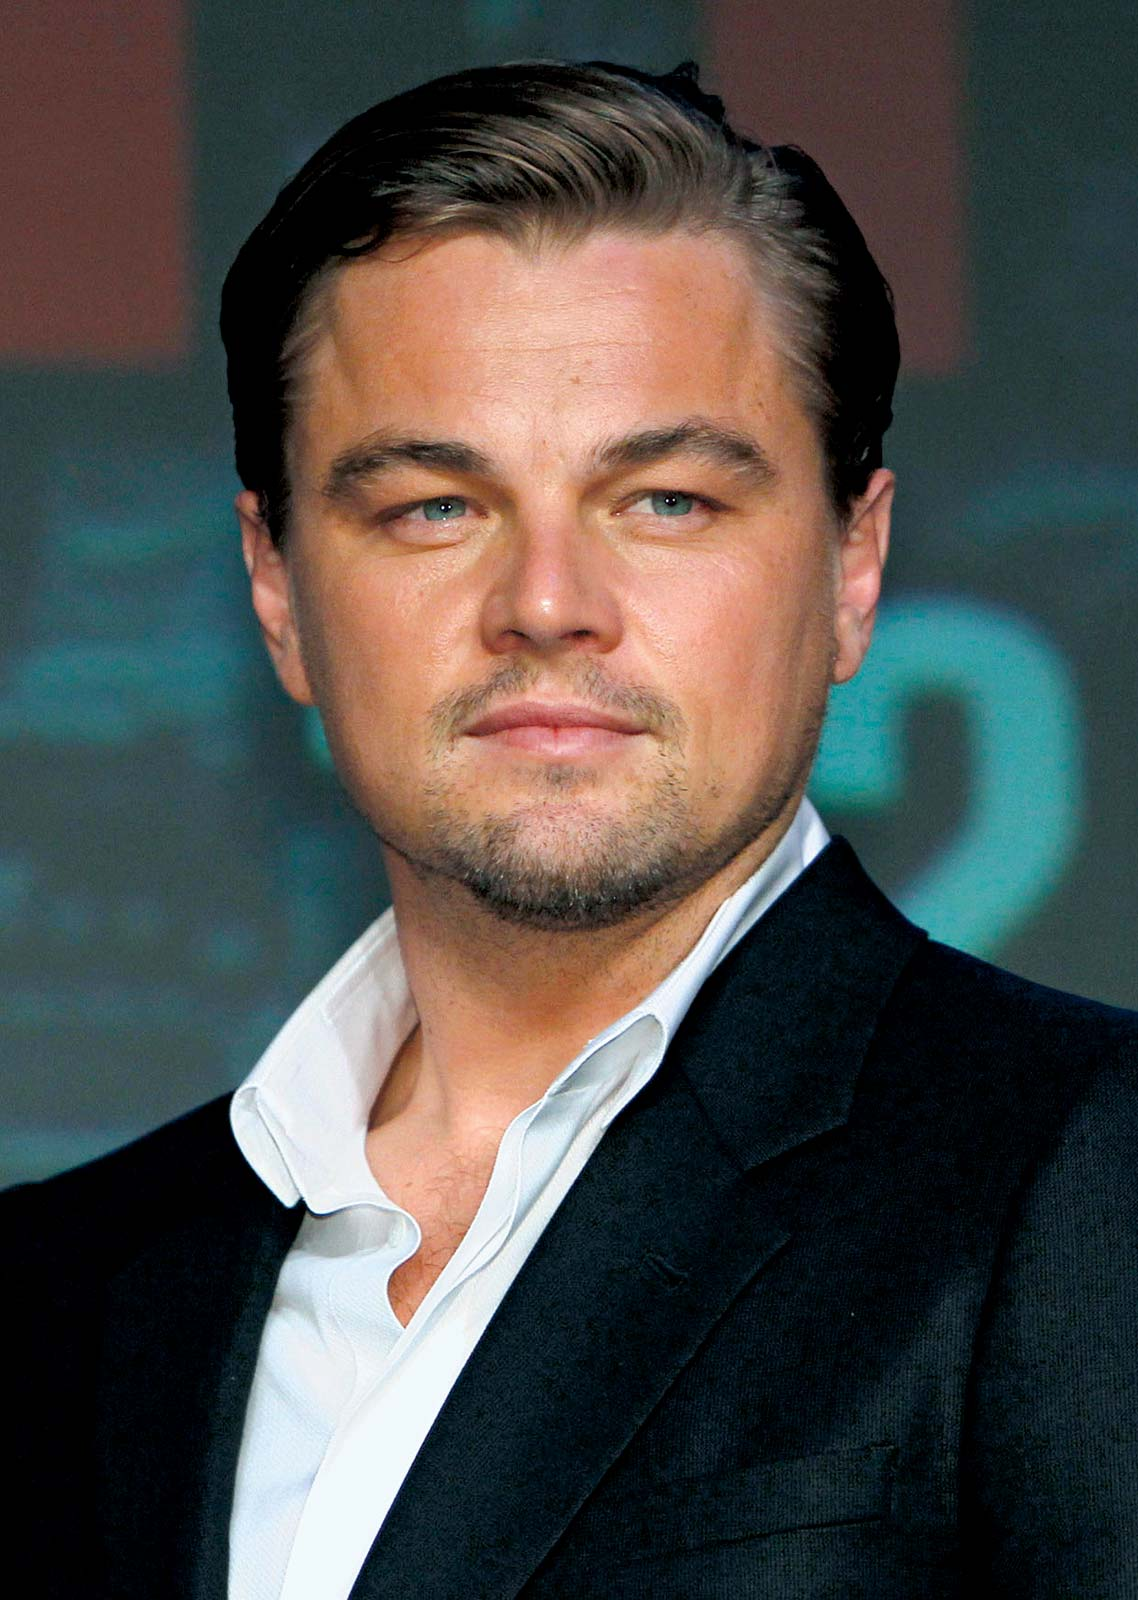 Leonardo DiCaprio 2010 Huge Actors You Didn't Know Started Out In Completely Embarrassing Movies